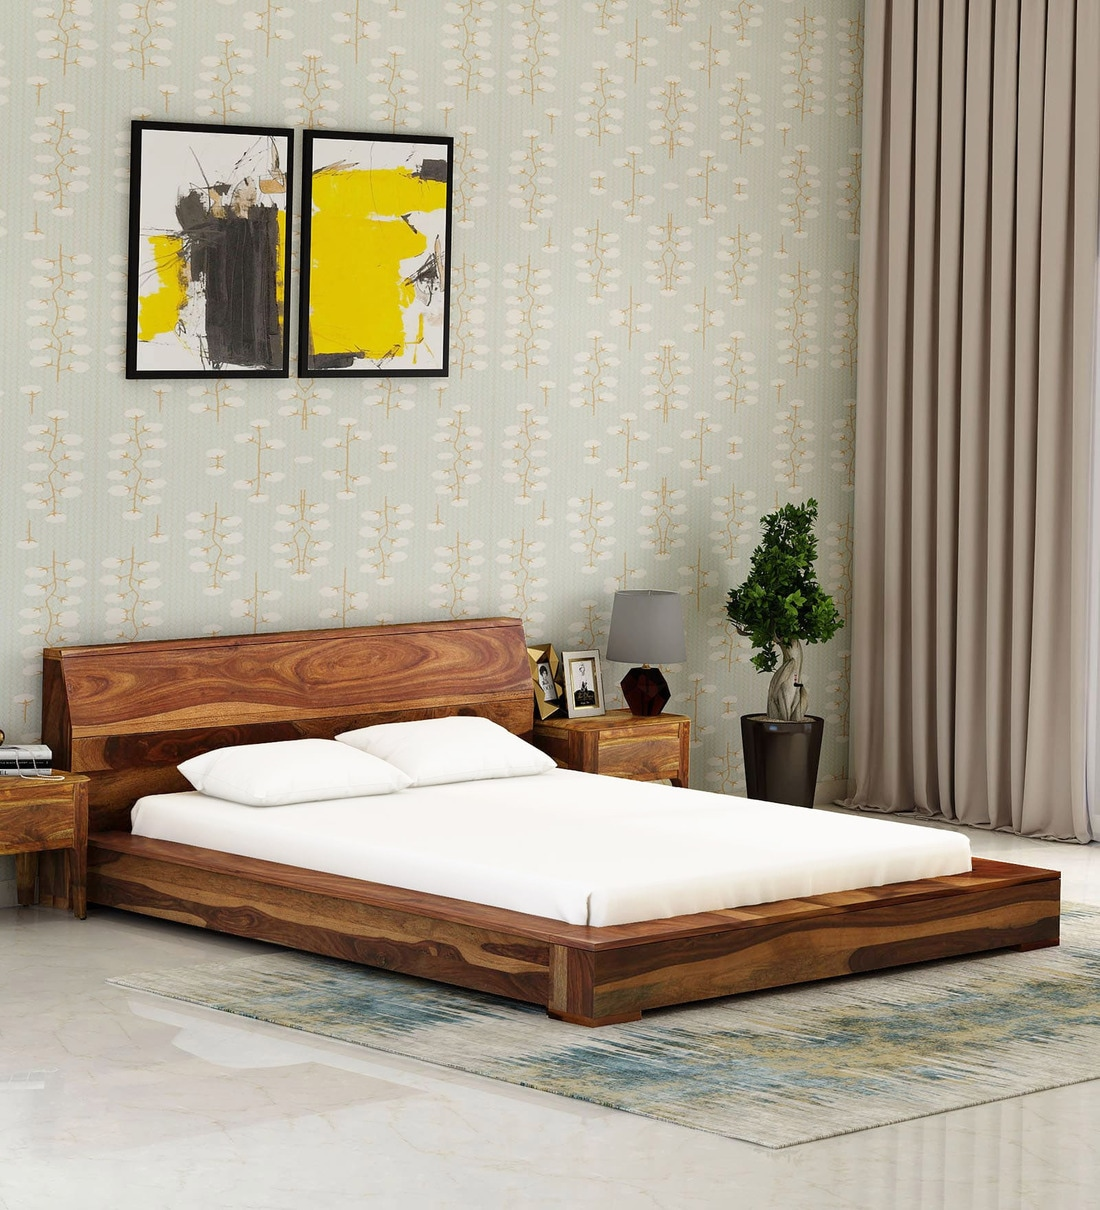 Picture of: Buy Clio Solid Wood Queen Size Platform Bed In Rustic Teak Finish By Woodsworth Online Platform Queen Size Beds Beds Furniture Pepperfry Product